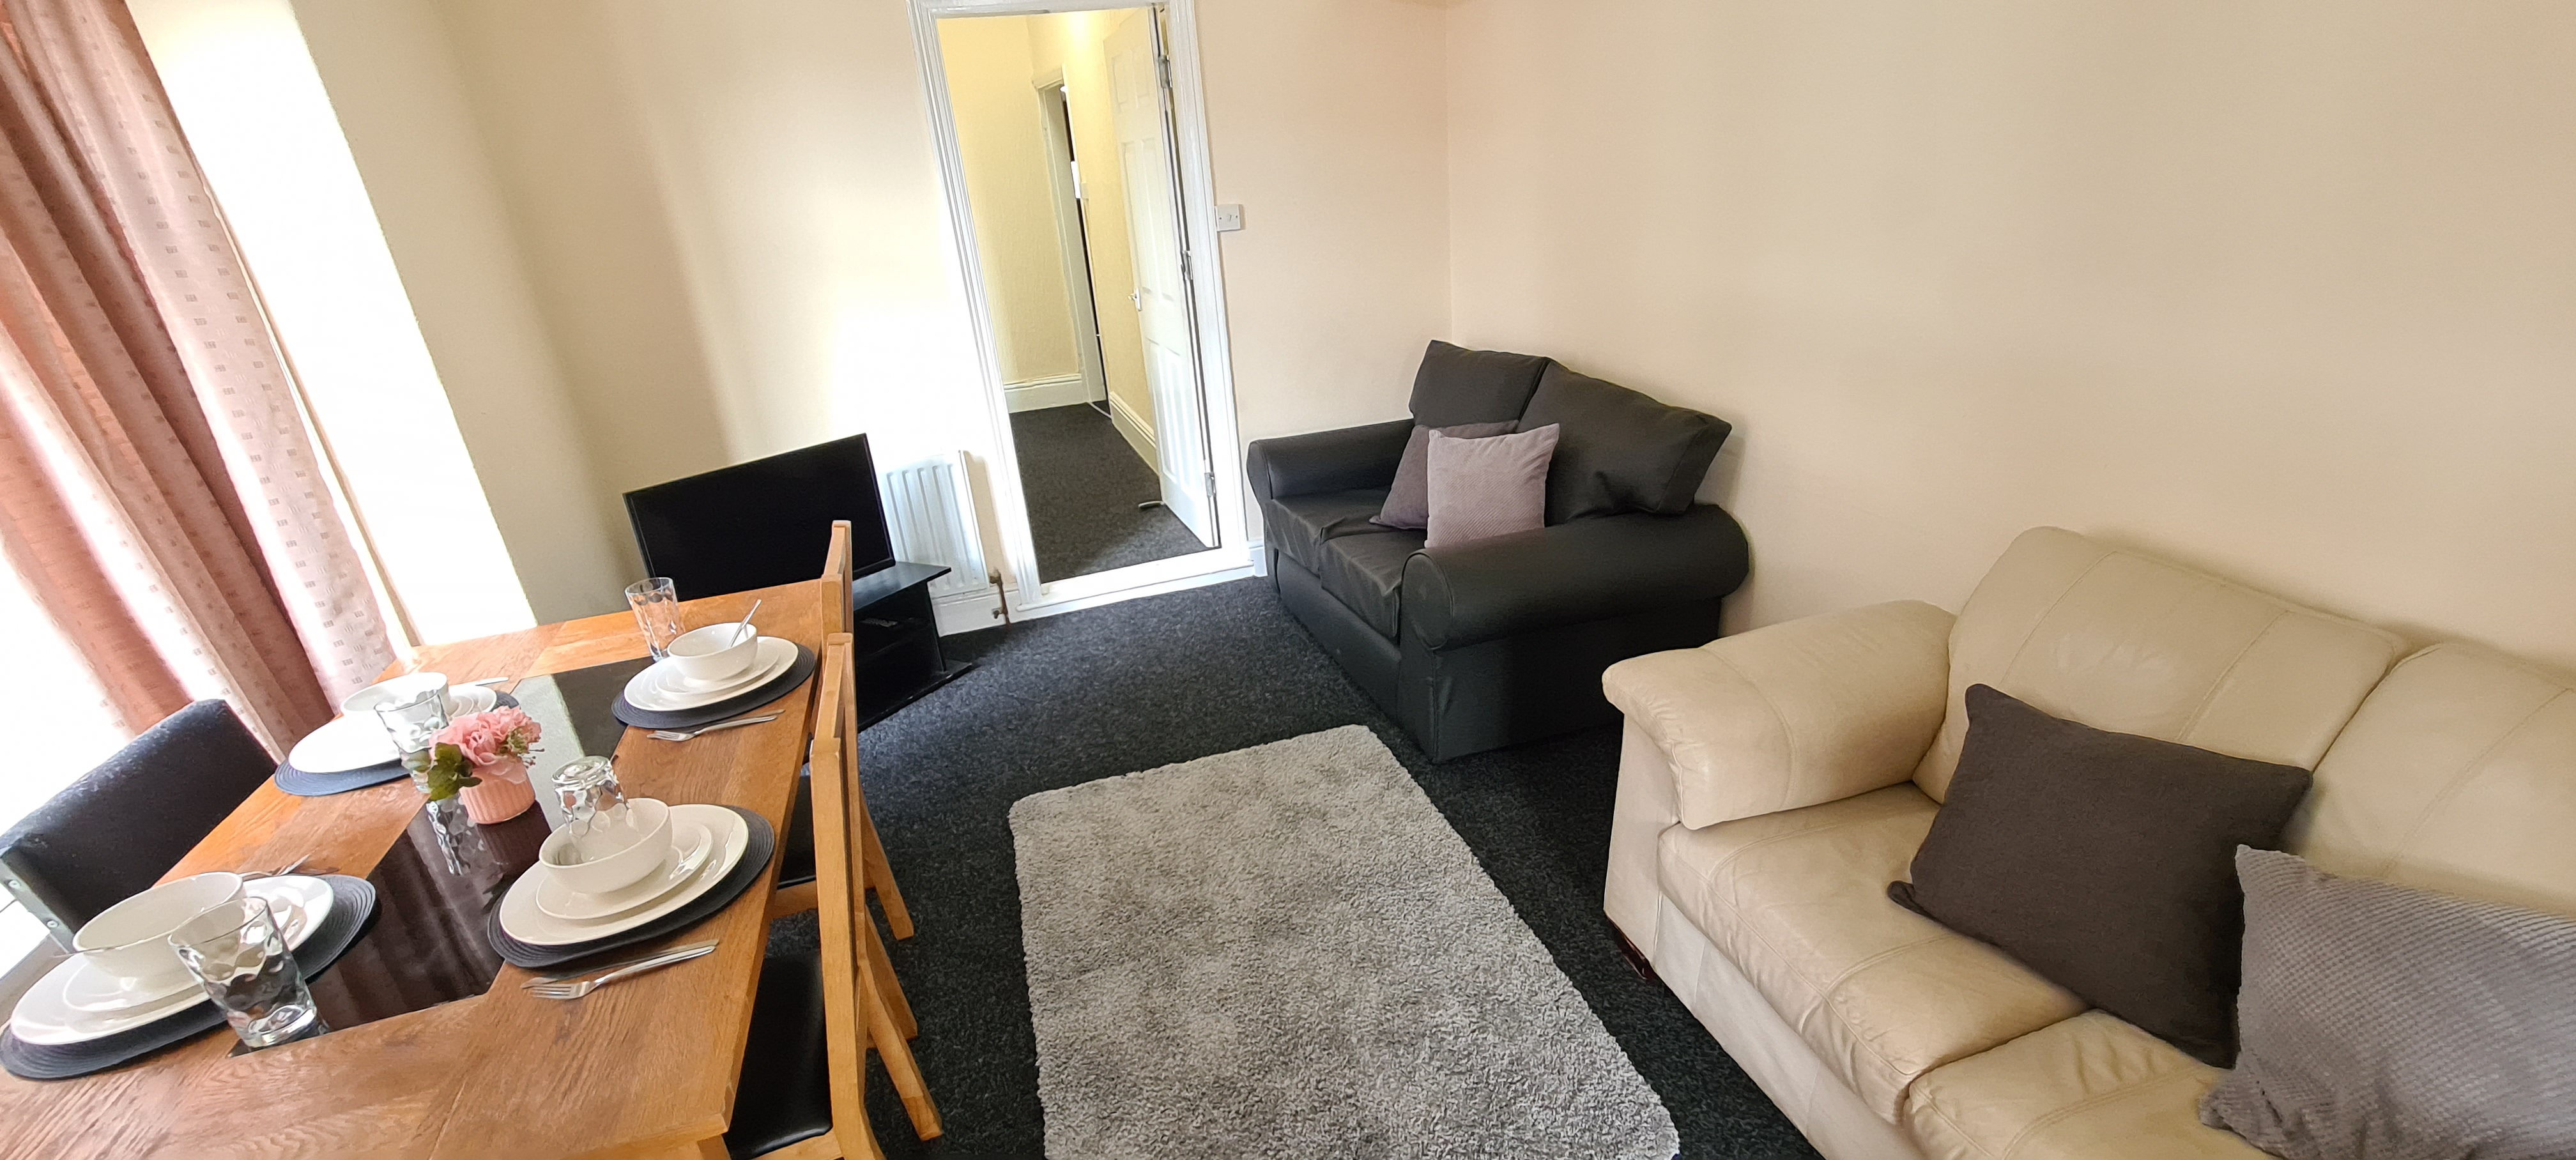 Longman Jones Student Accommodation Available academic year 21/22! Falmouth Street (Ref: 1500)